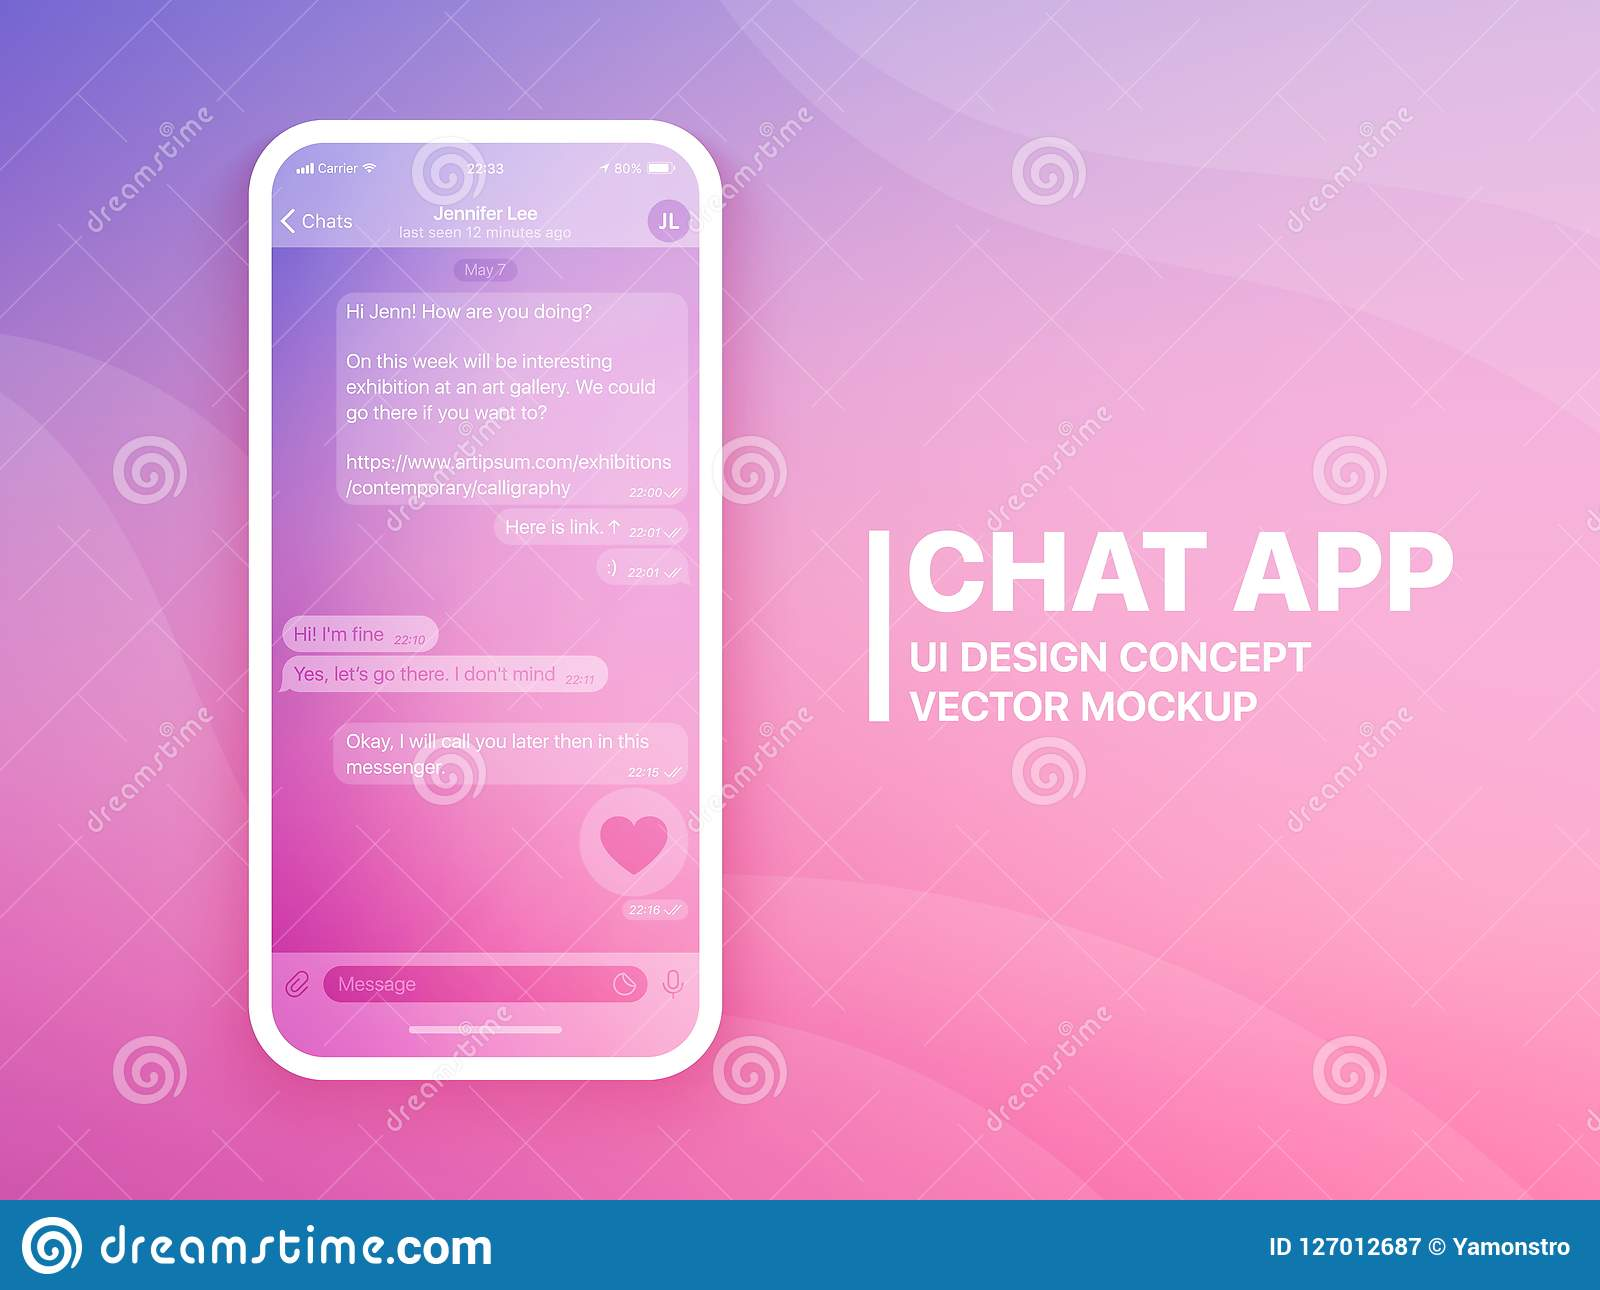 Replace the existing content with your text, images and others. Whatsapp Mockup Stock Illustrations 182 Whatsapp Mockup Stock Illustrations Vectors Clipart Dreamstime